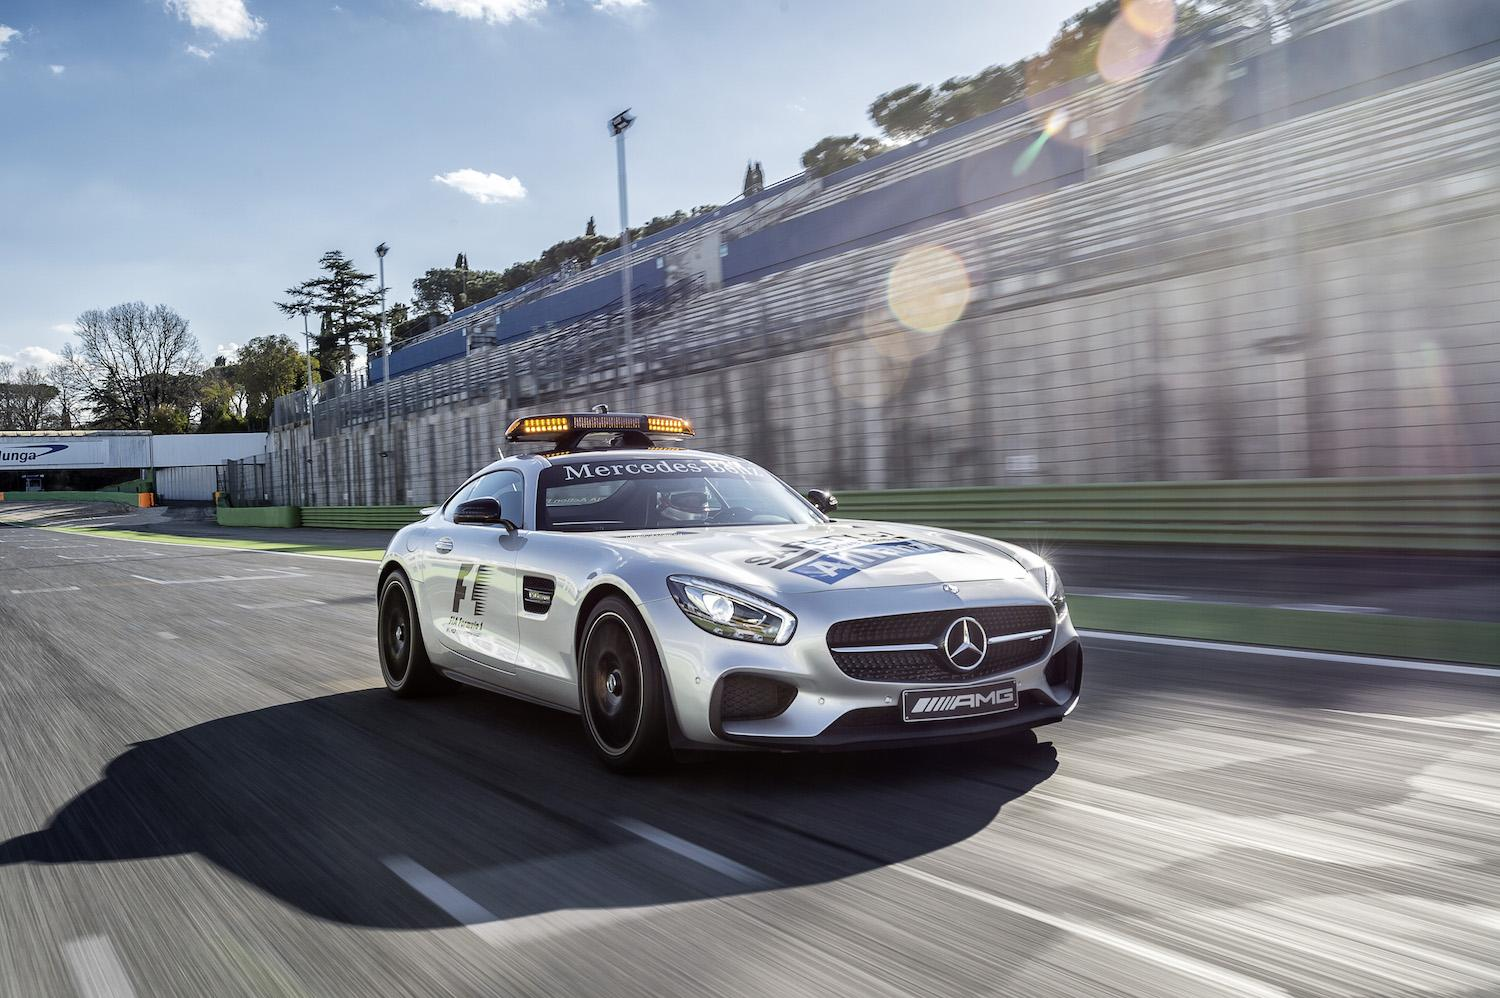 mercedes amg gt s replaces the retiring sls amg as f1 s official safety car. Black Bedroom Furniture Sets. Home Design Ideas